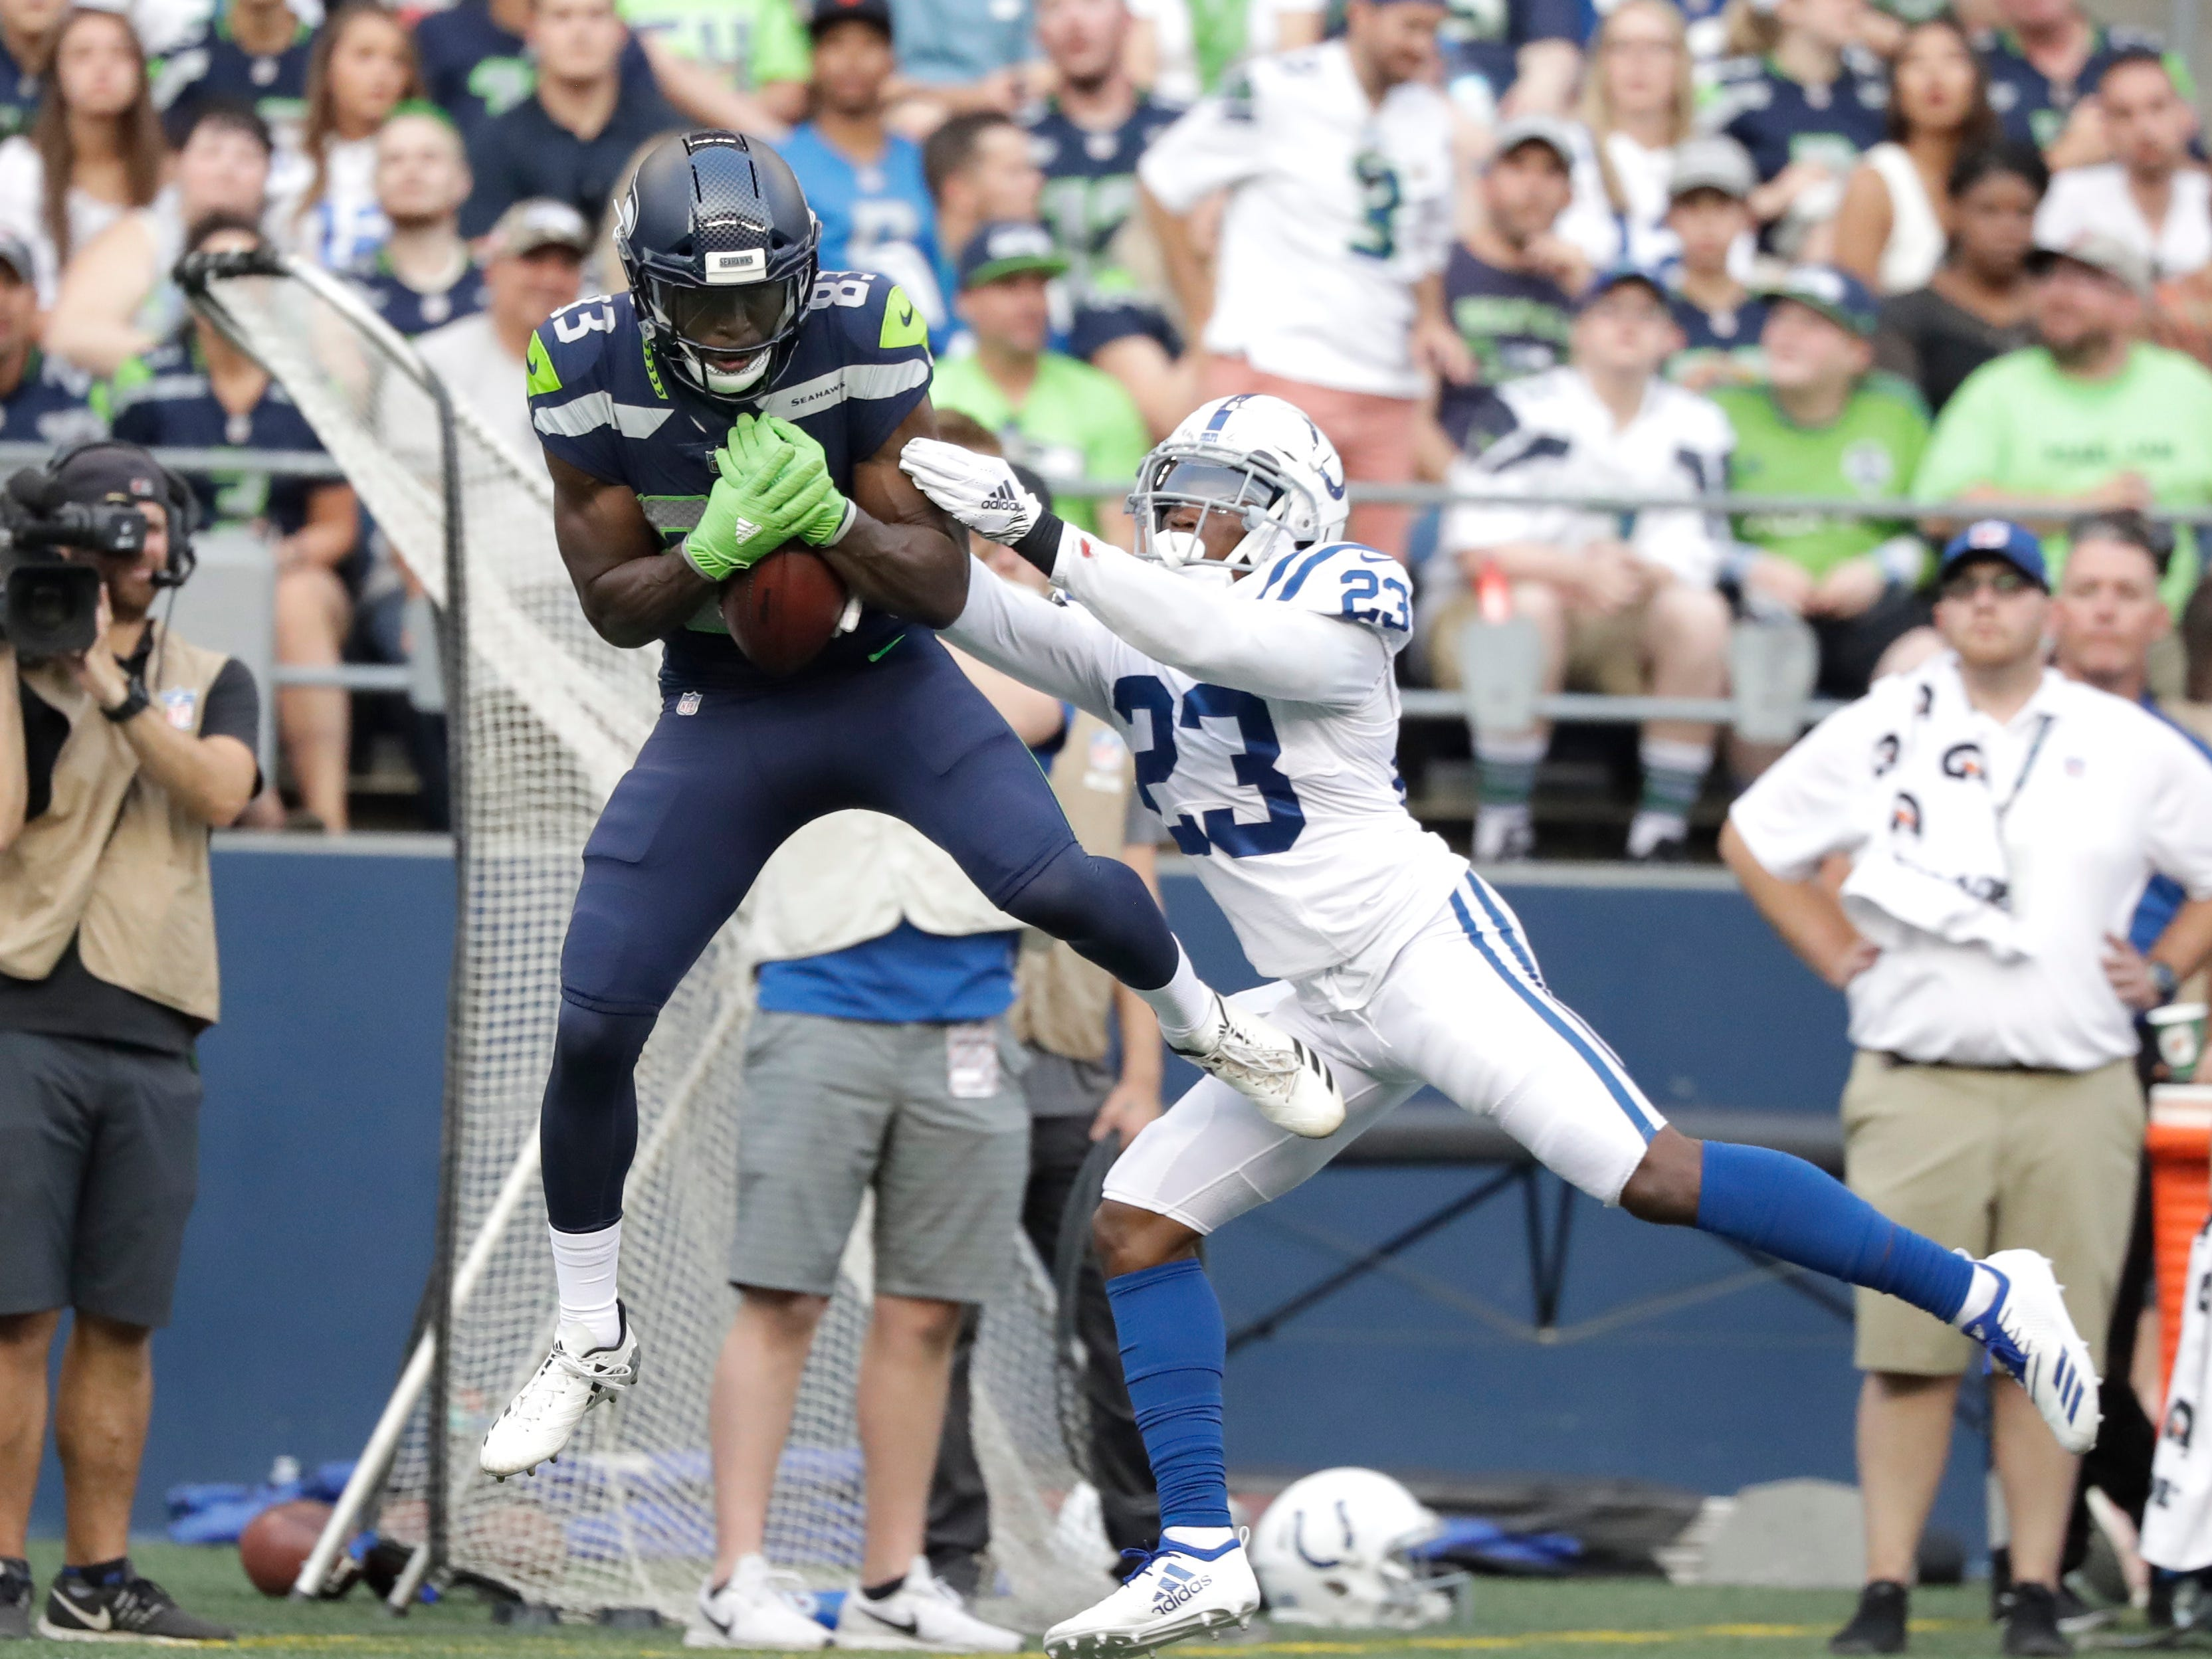 Seattle Seahawks wide receiver David Moore (83) makes a catch above Indianapolis Colts cornerback Kenny Moore (23) during the first half of an NFL football preseason game, Thursday, Aug. 9, 2018, in Seattle. (AP Photo/Elaine Thompson)